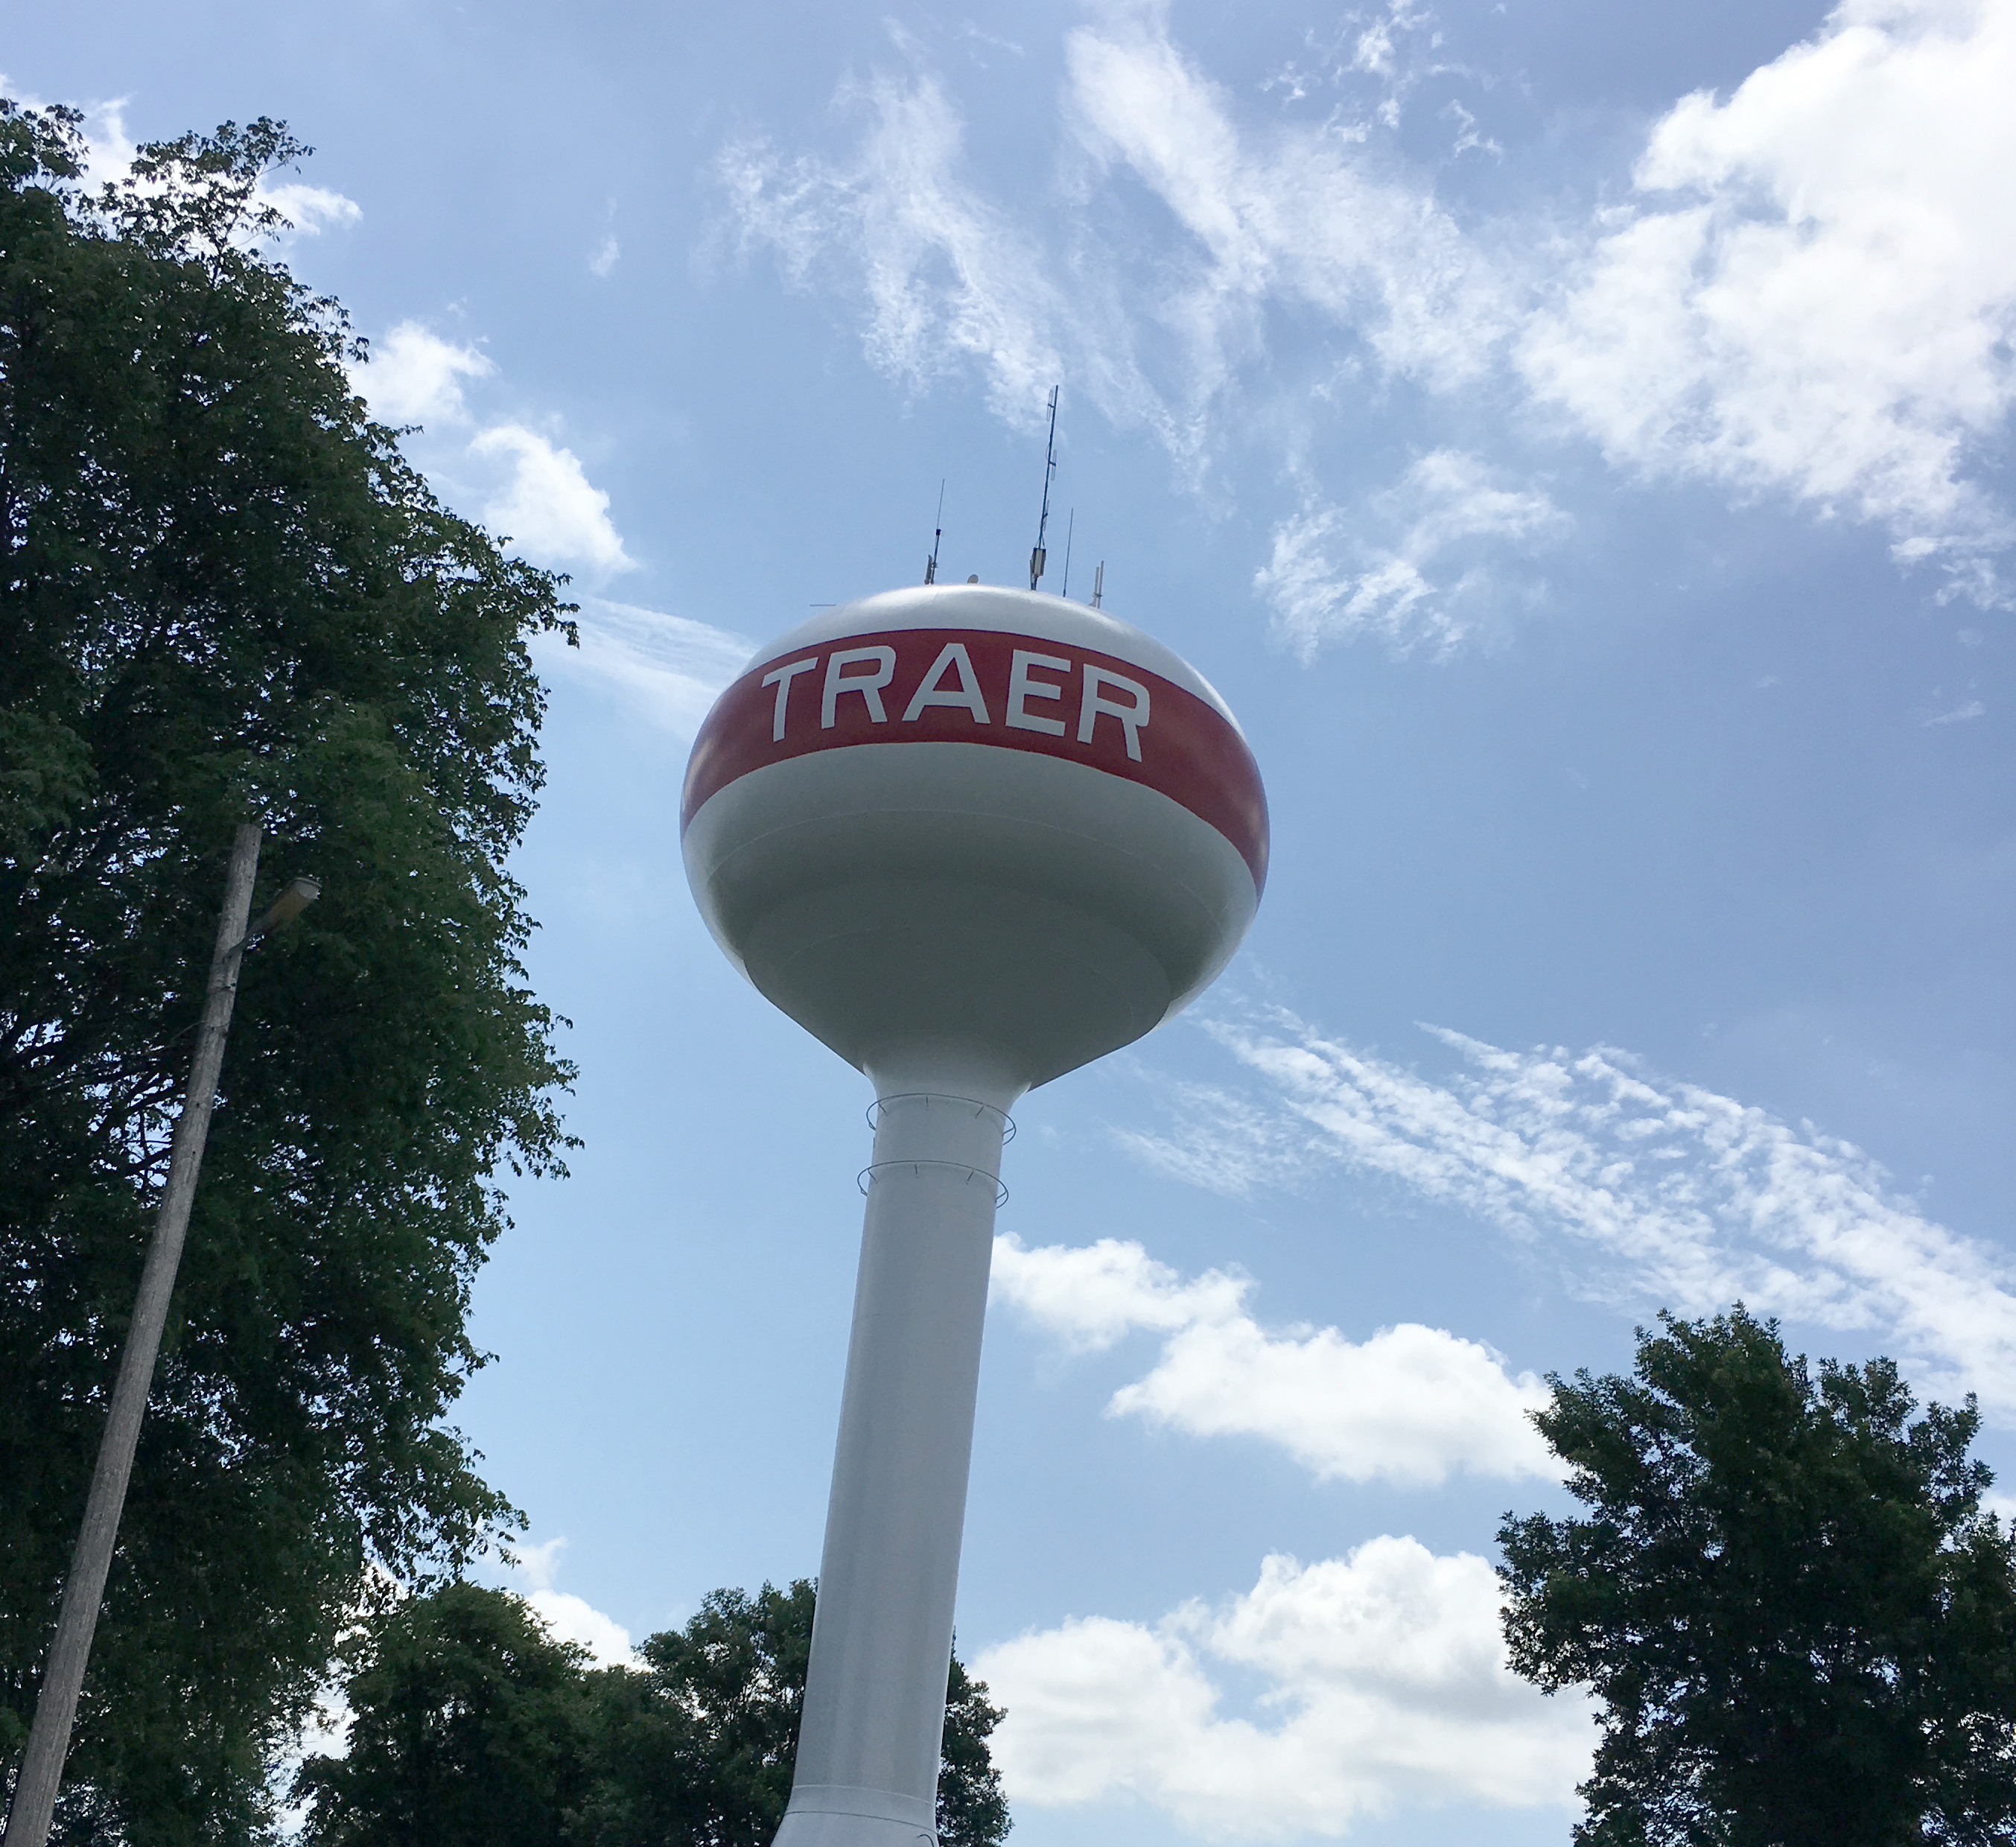 Traer Water Tower